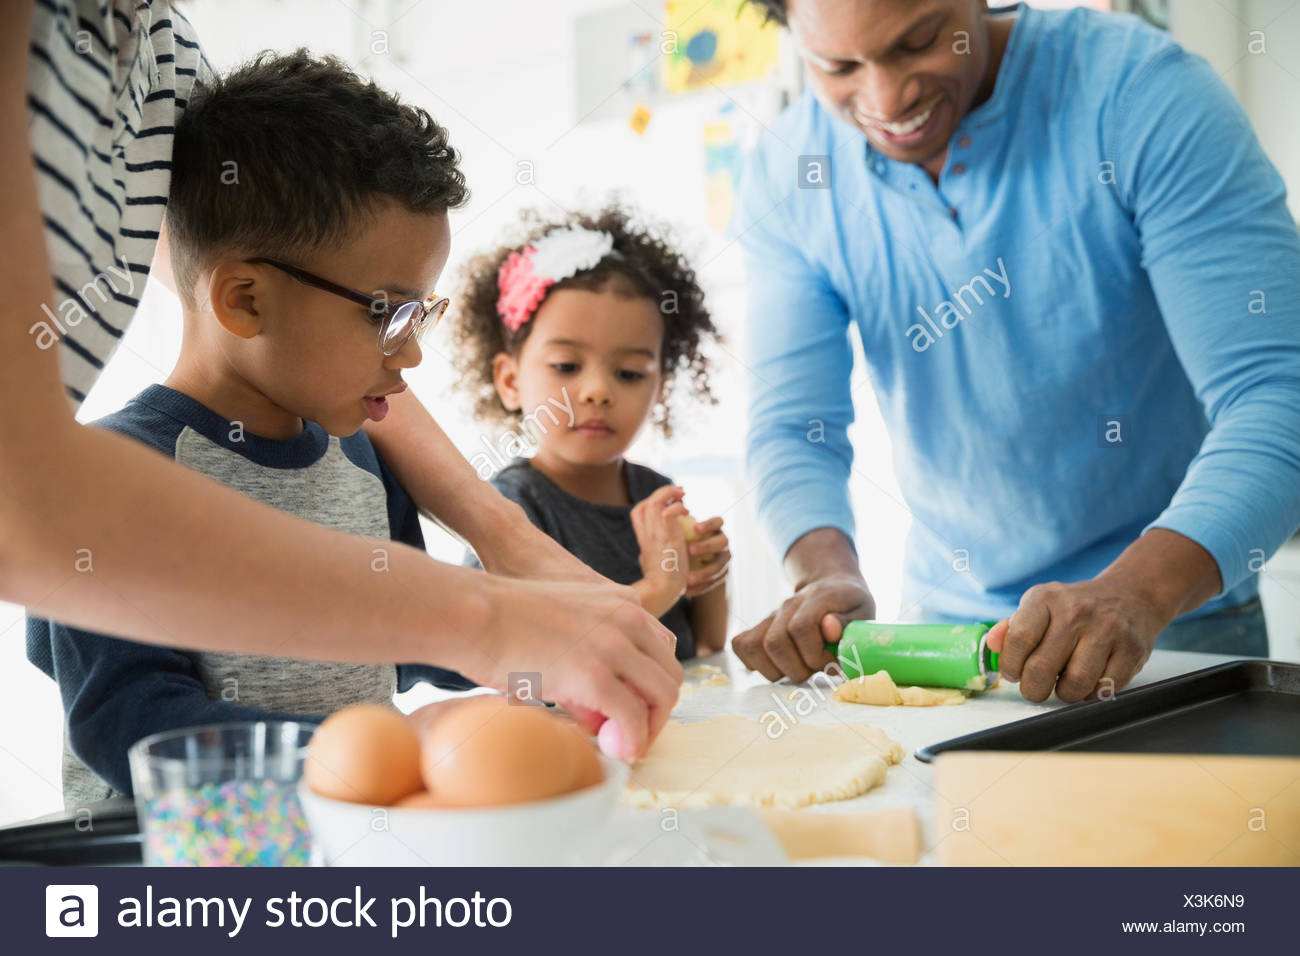 Family baking rolling out cookie dough - Stock Image